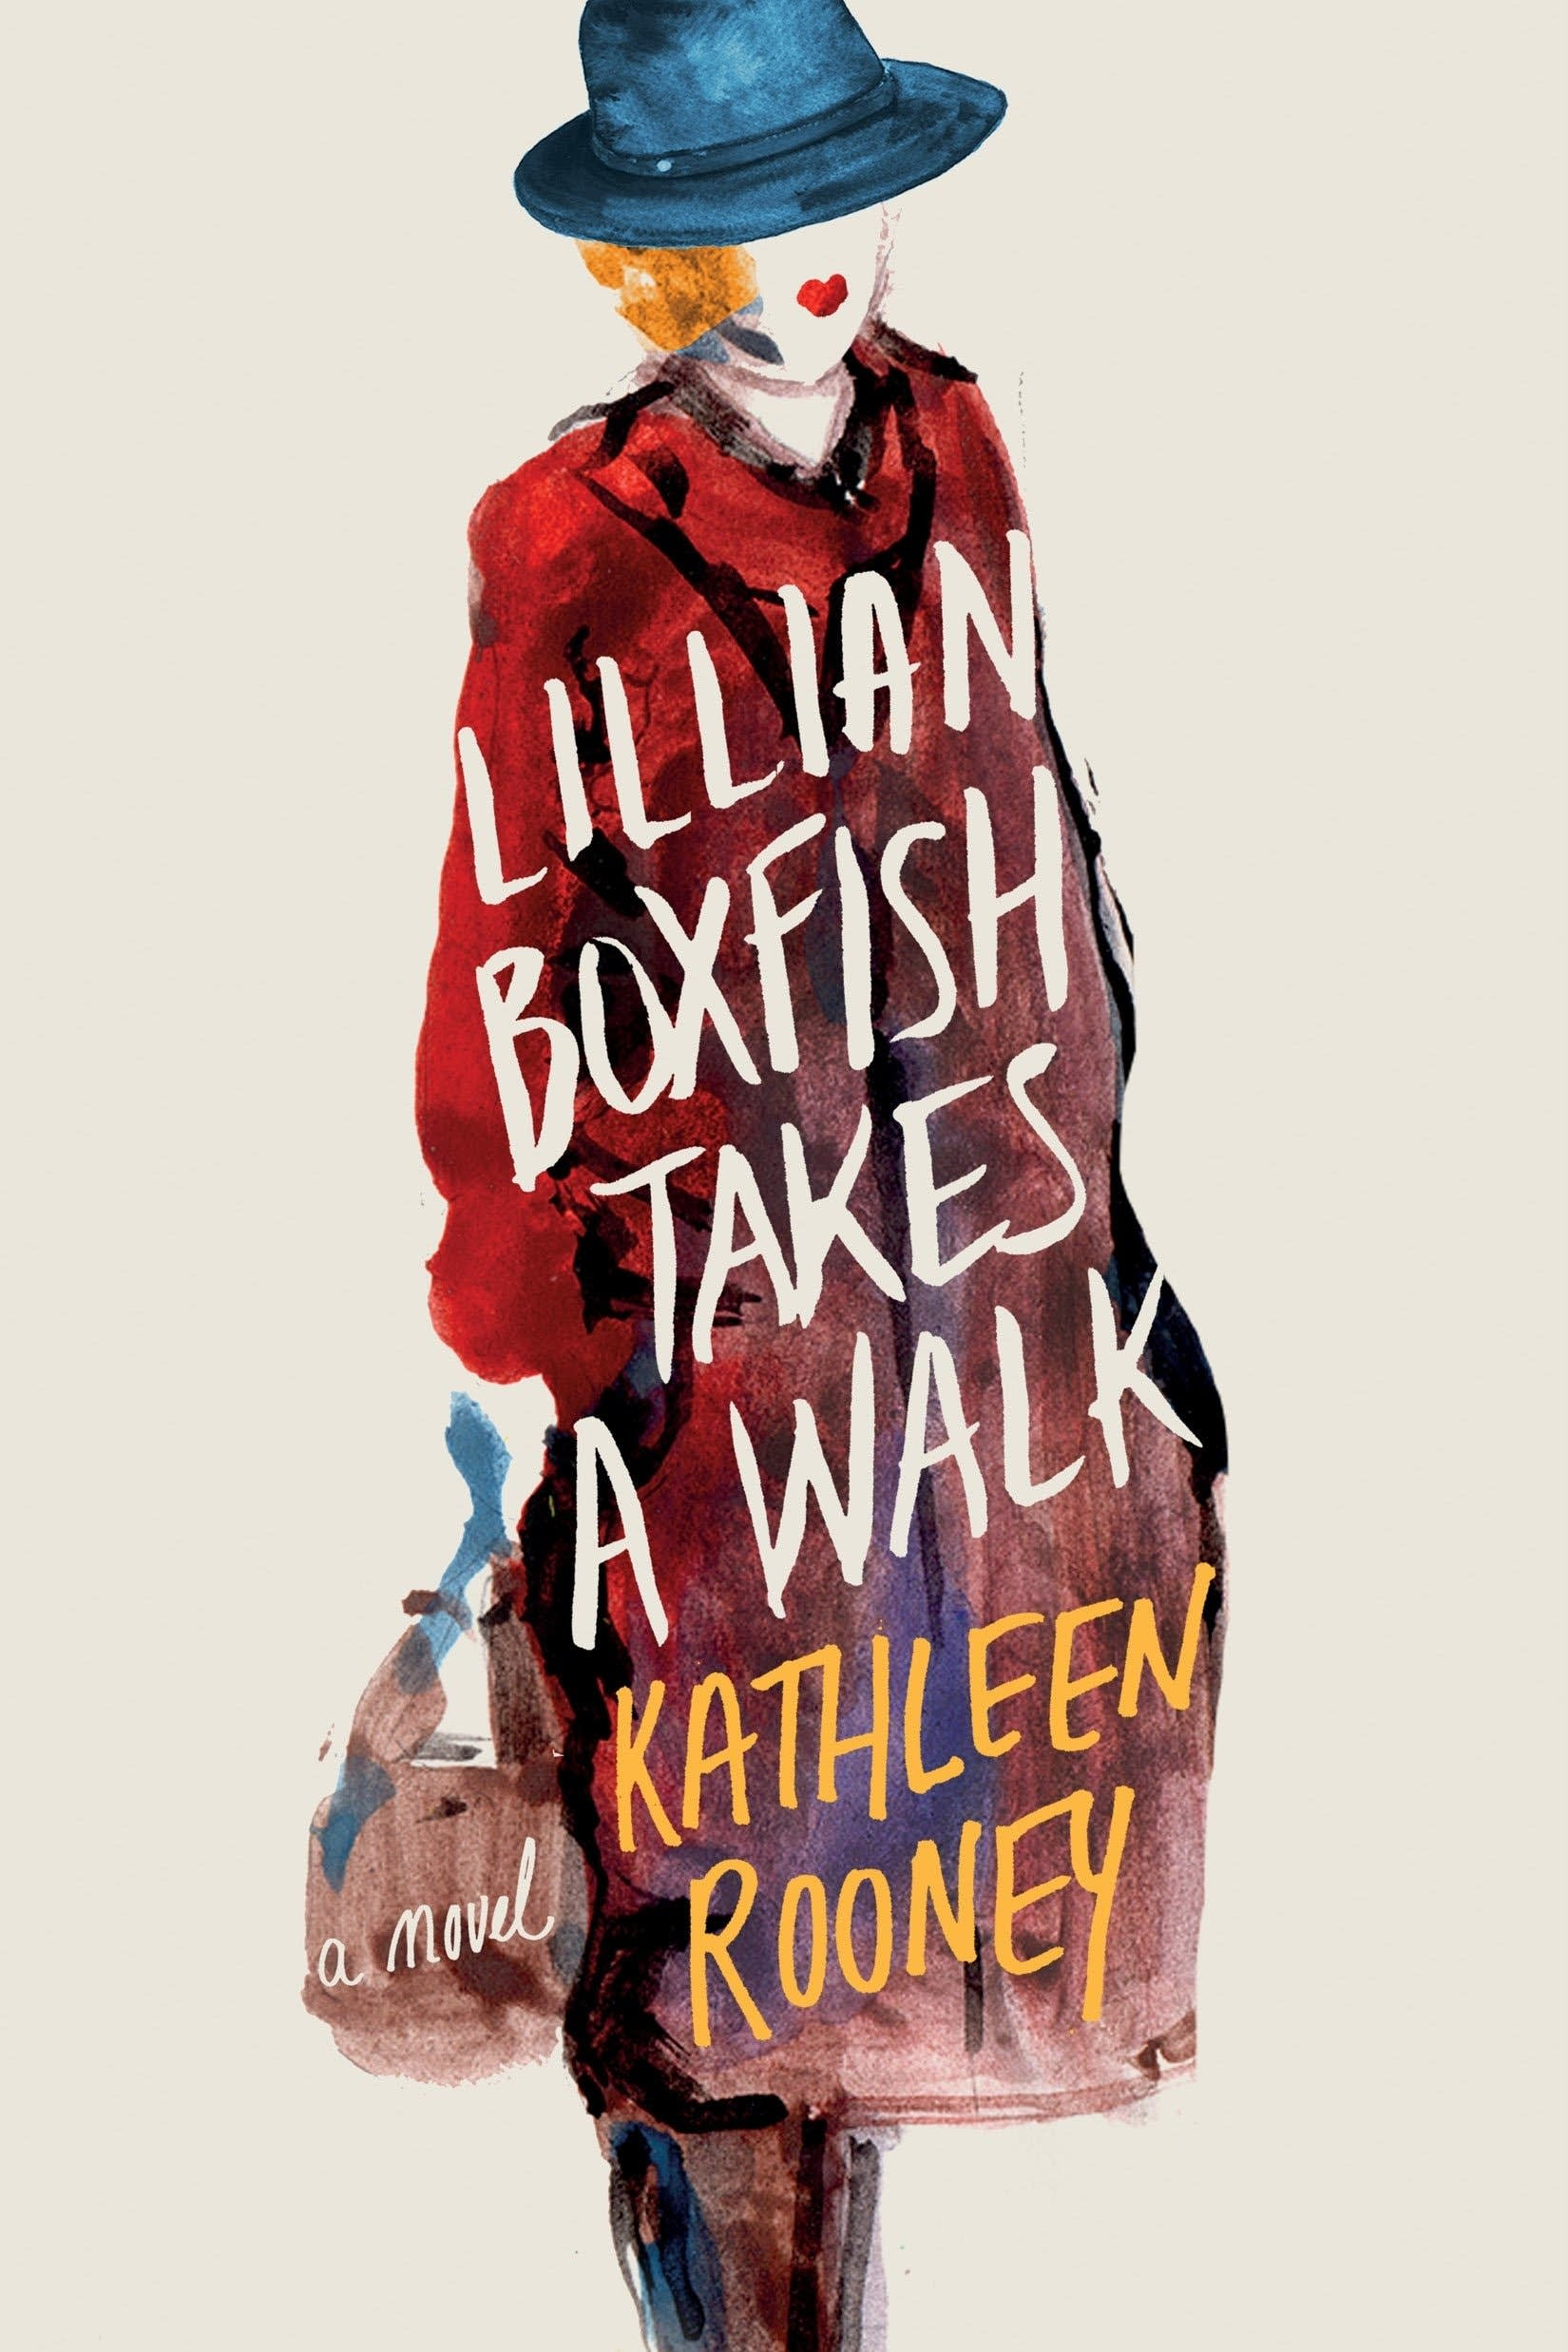 'Lillian Boxfish Takes a Walk'